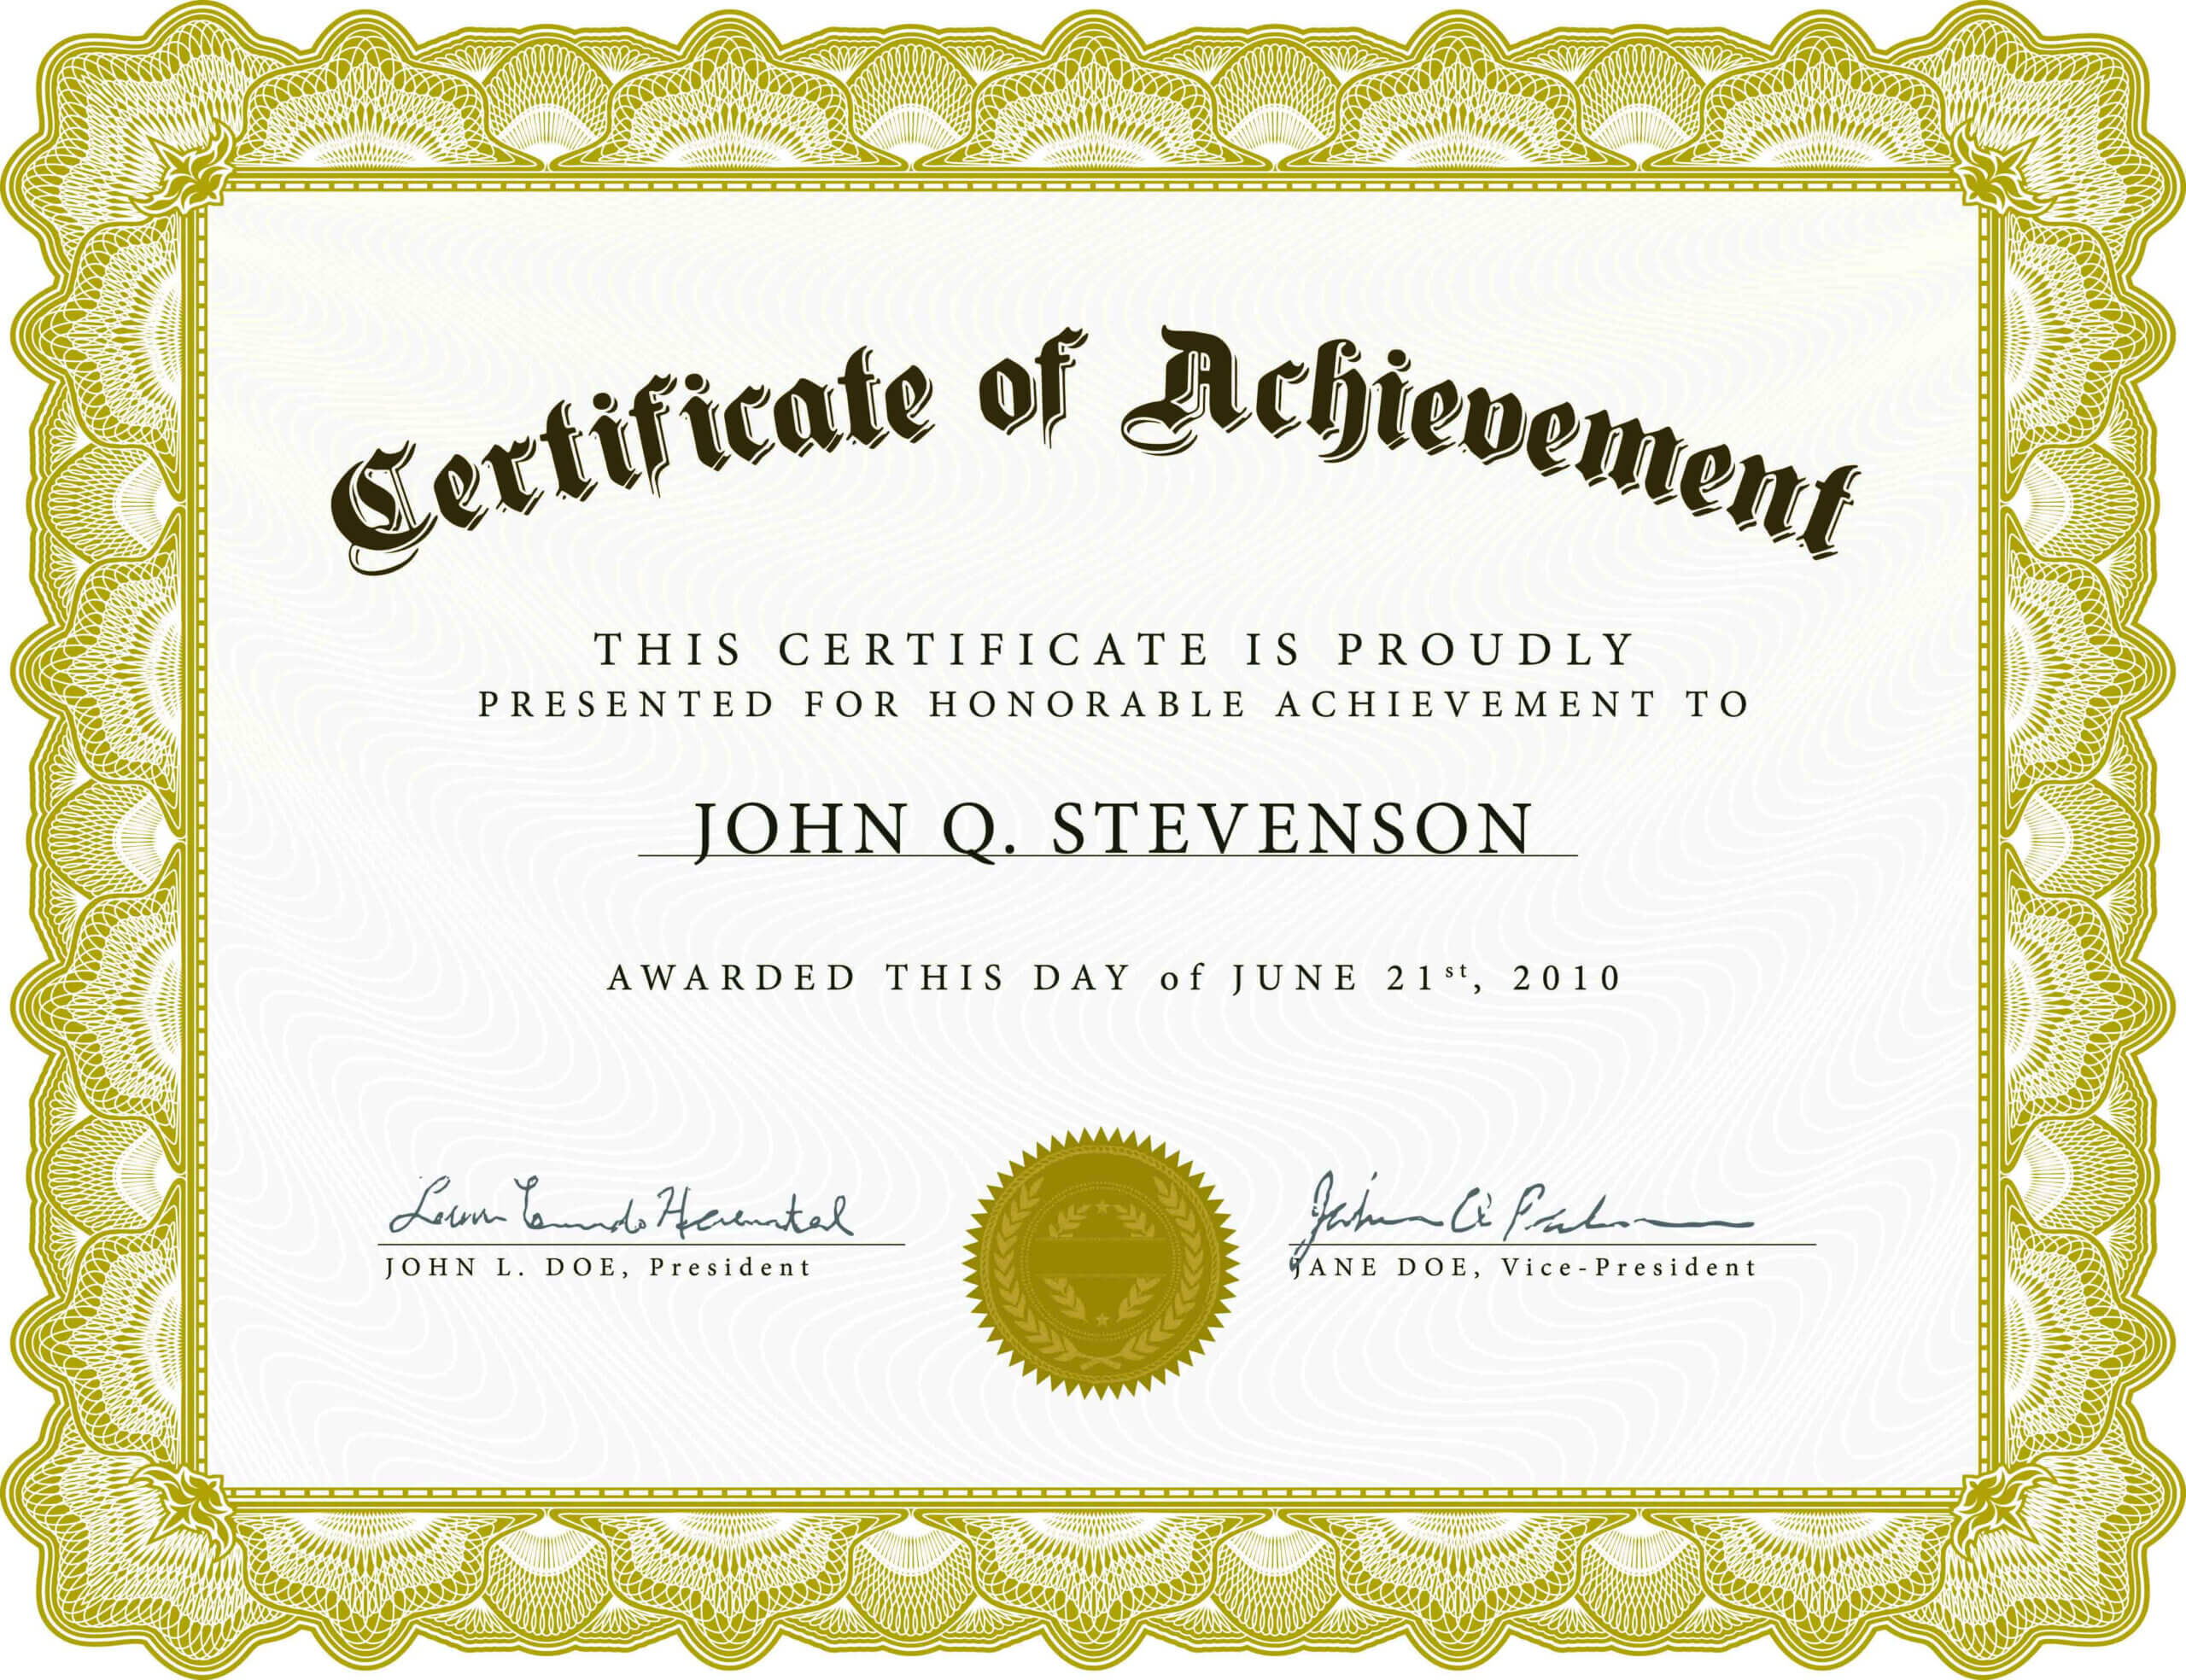 Diploma Certificate Format In Word - Calep.midnightpig.co With Regard To Free Printable Graduation Certificate Templates